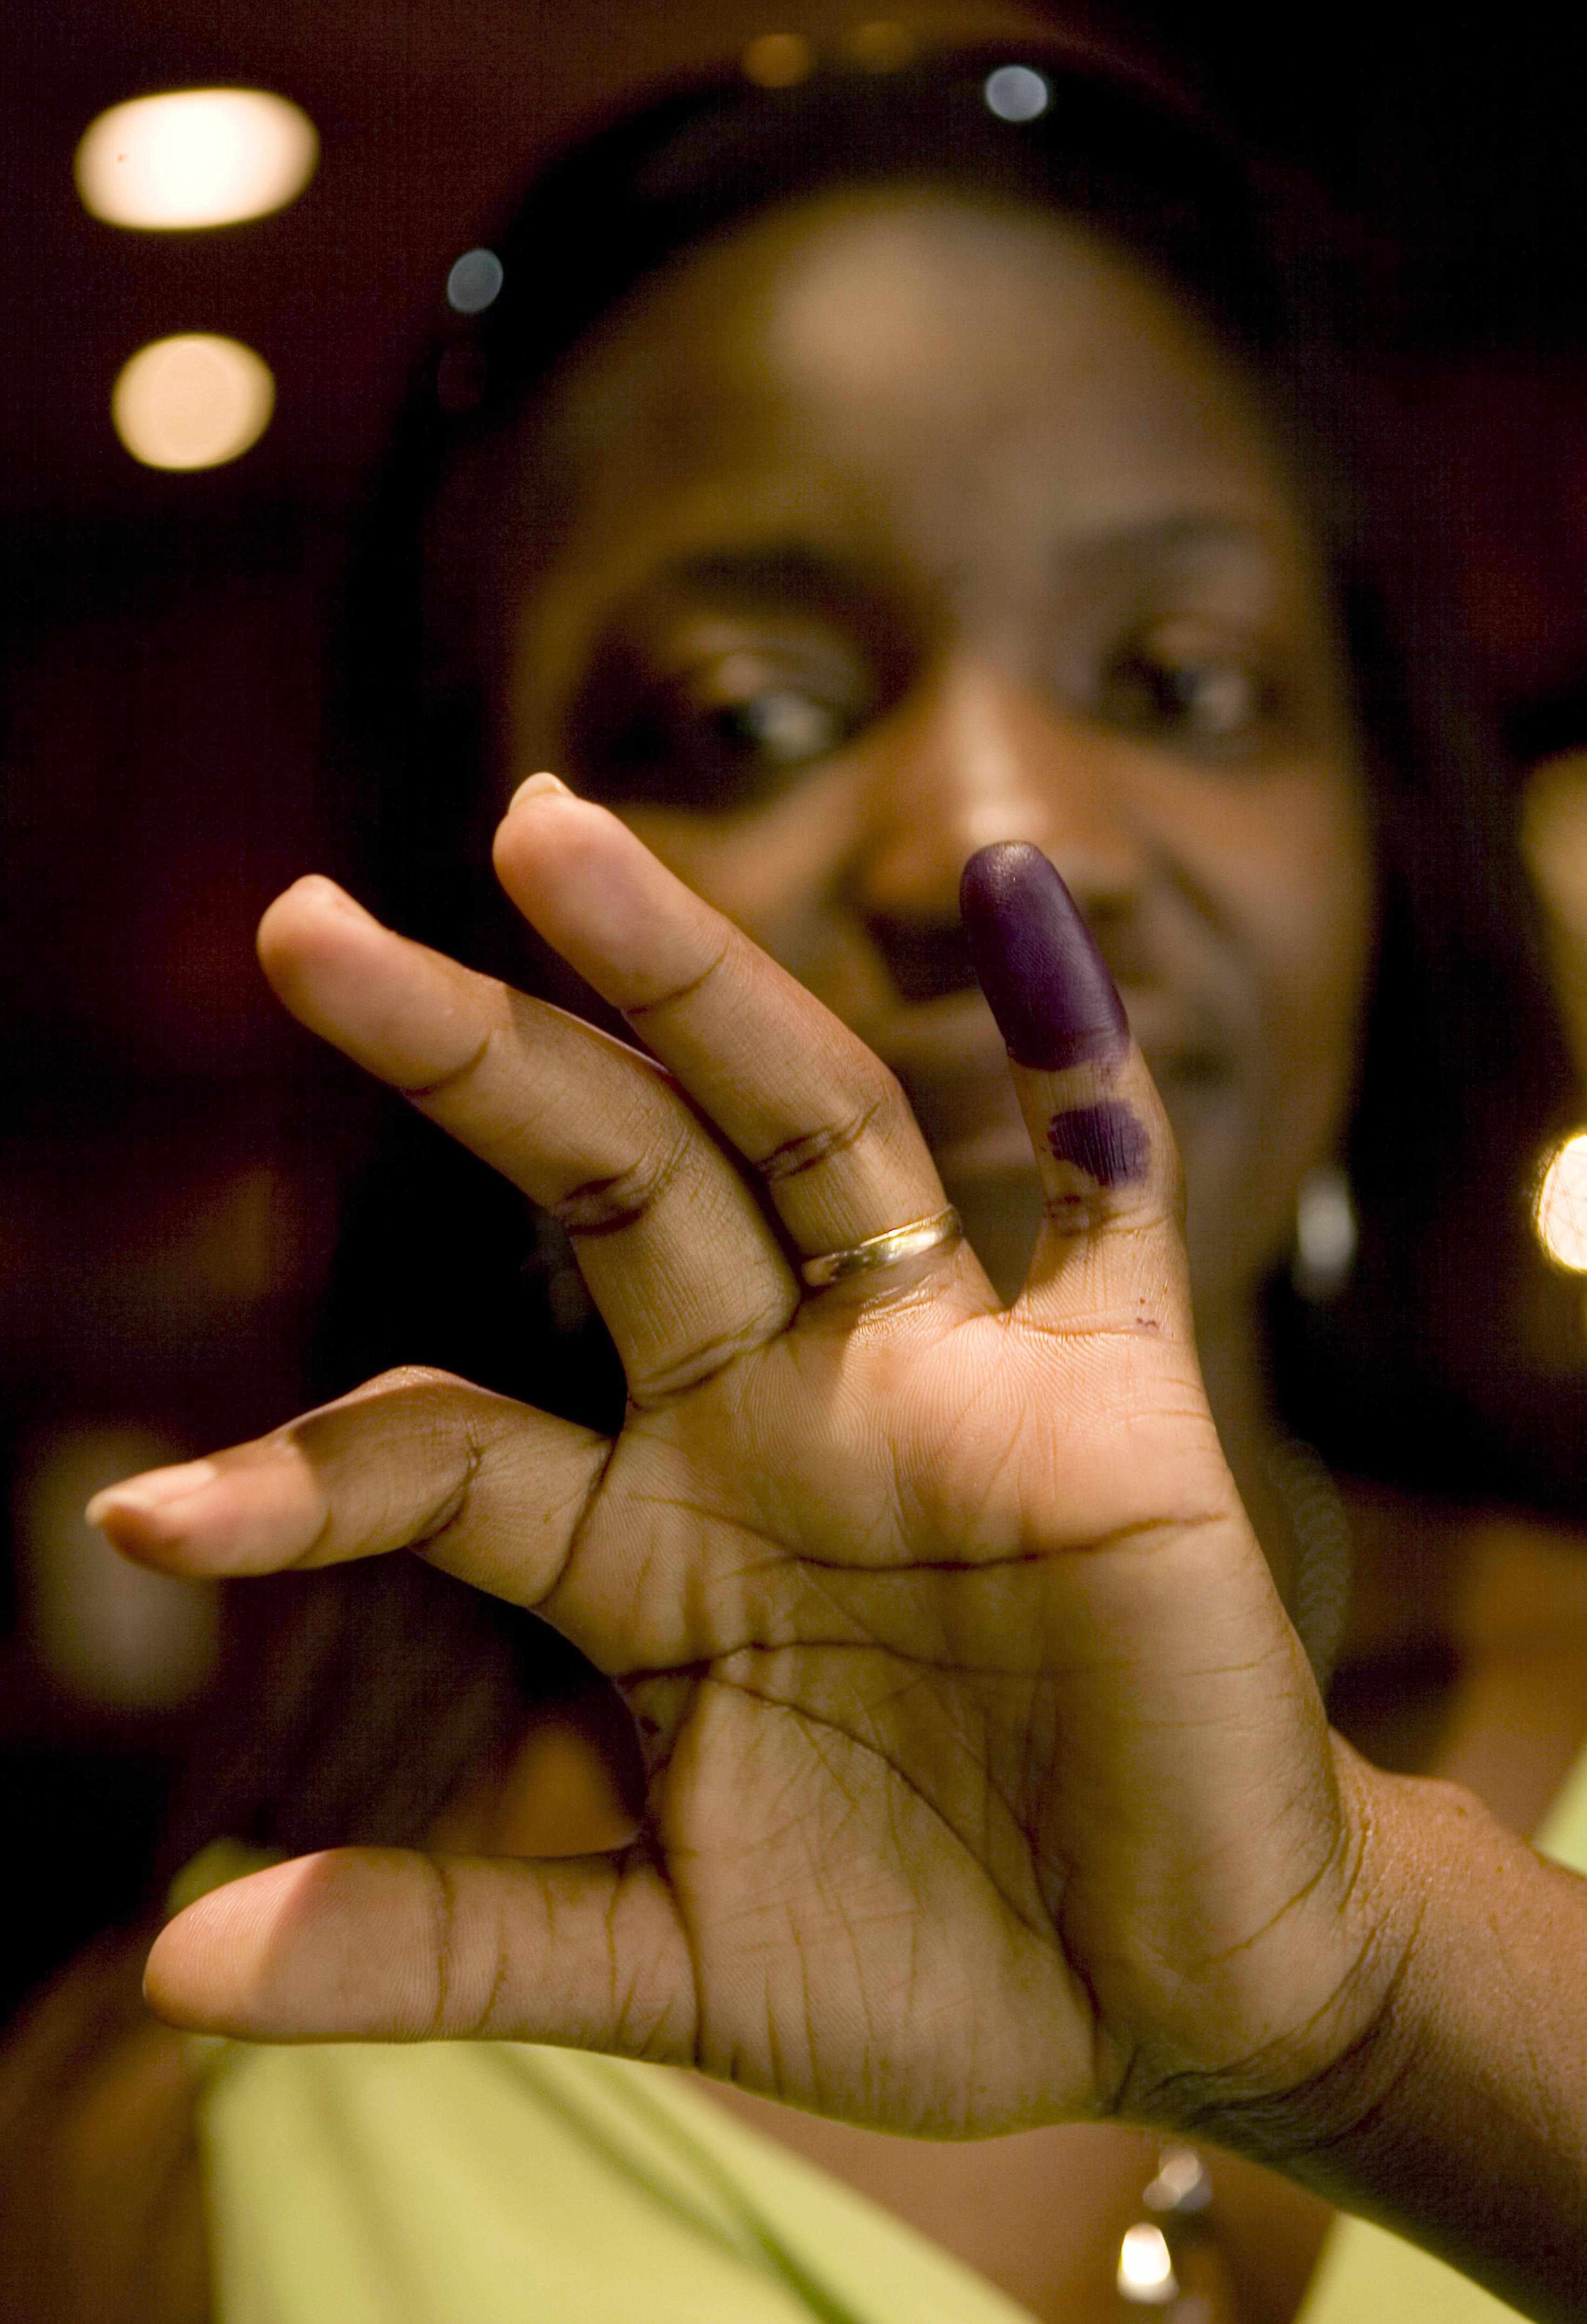 A Kenyan woman shows her finger dipped in ink as proof of participating in the presidential election yesterday.